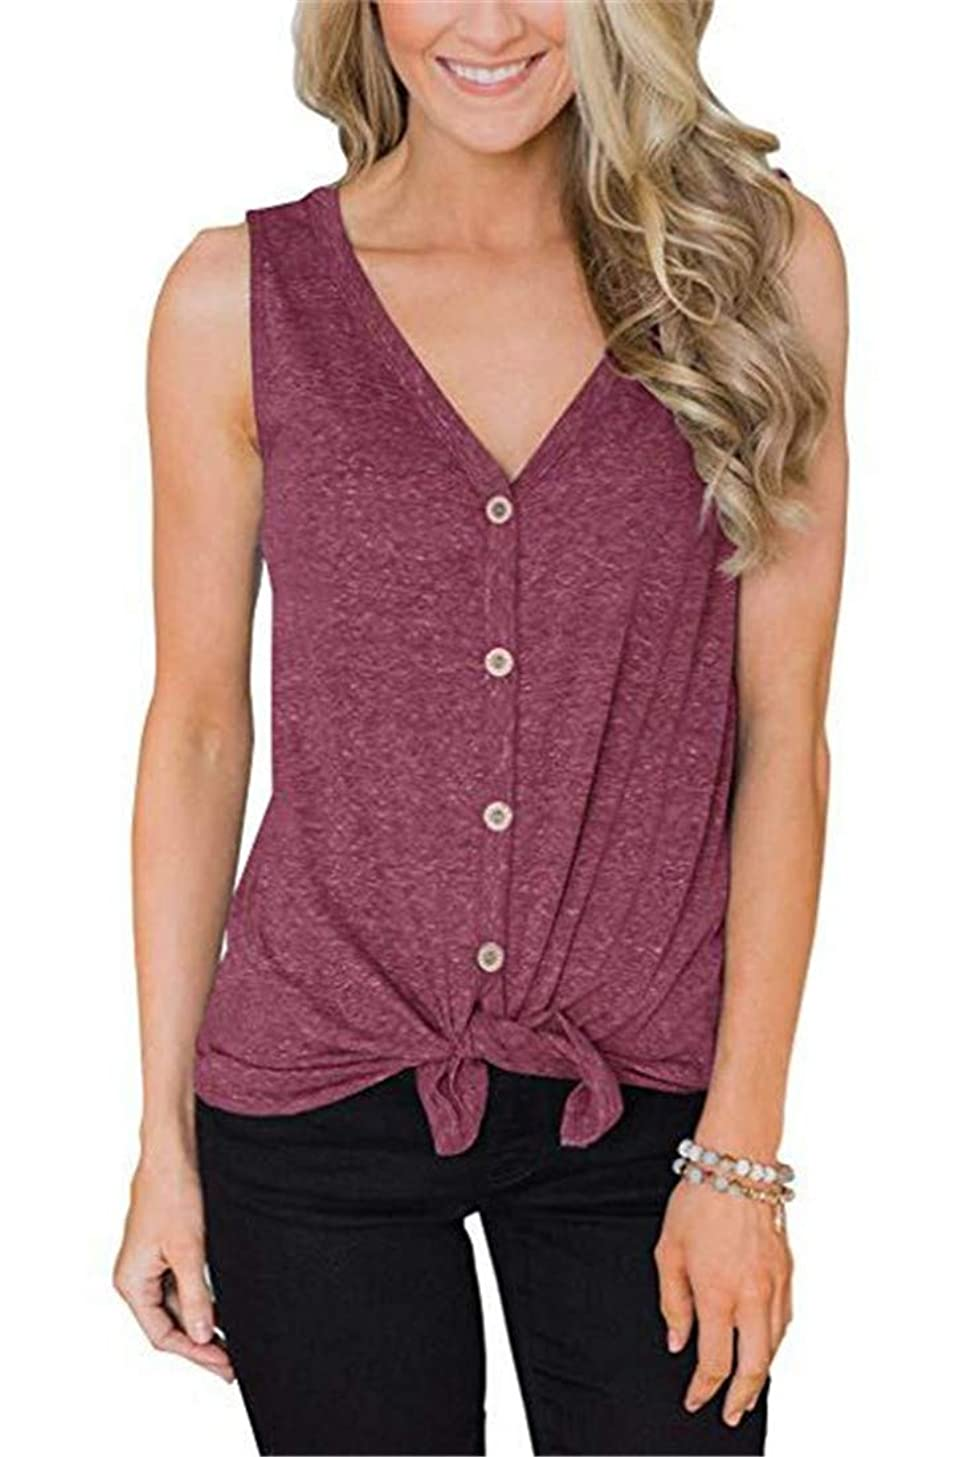 Women's Summer Casual Sleeveless Button Down Tie Knot Loose Fit Plain Shirts Tops